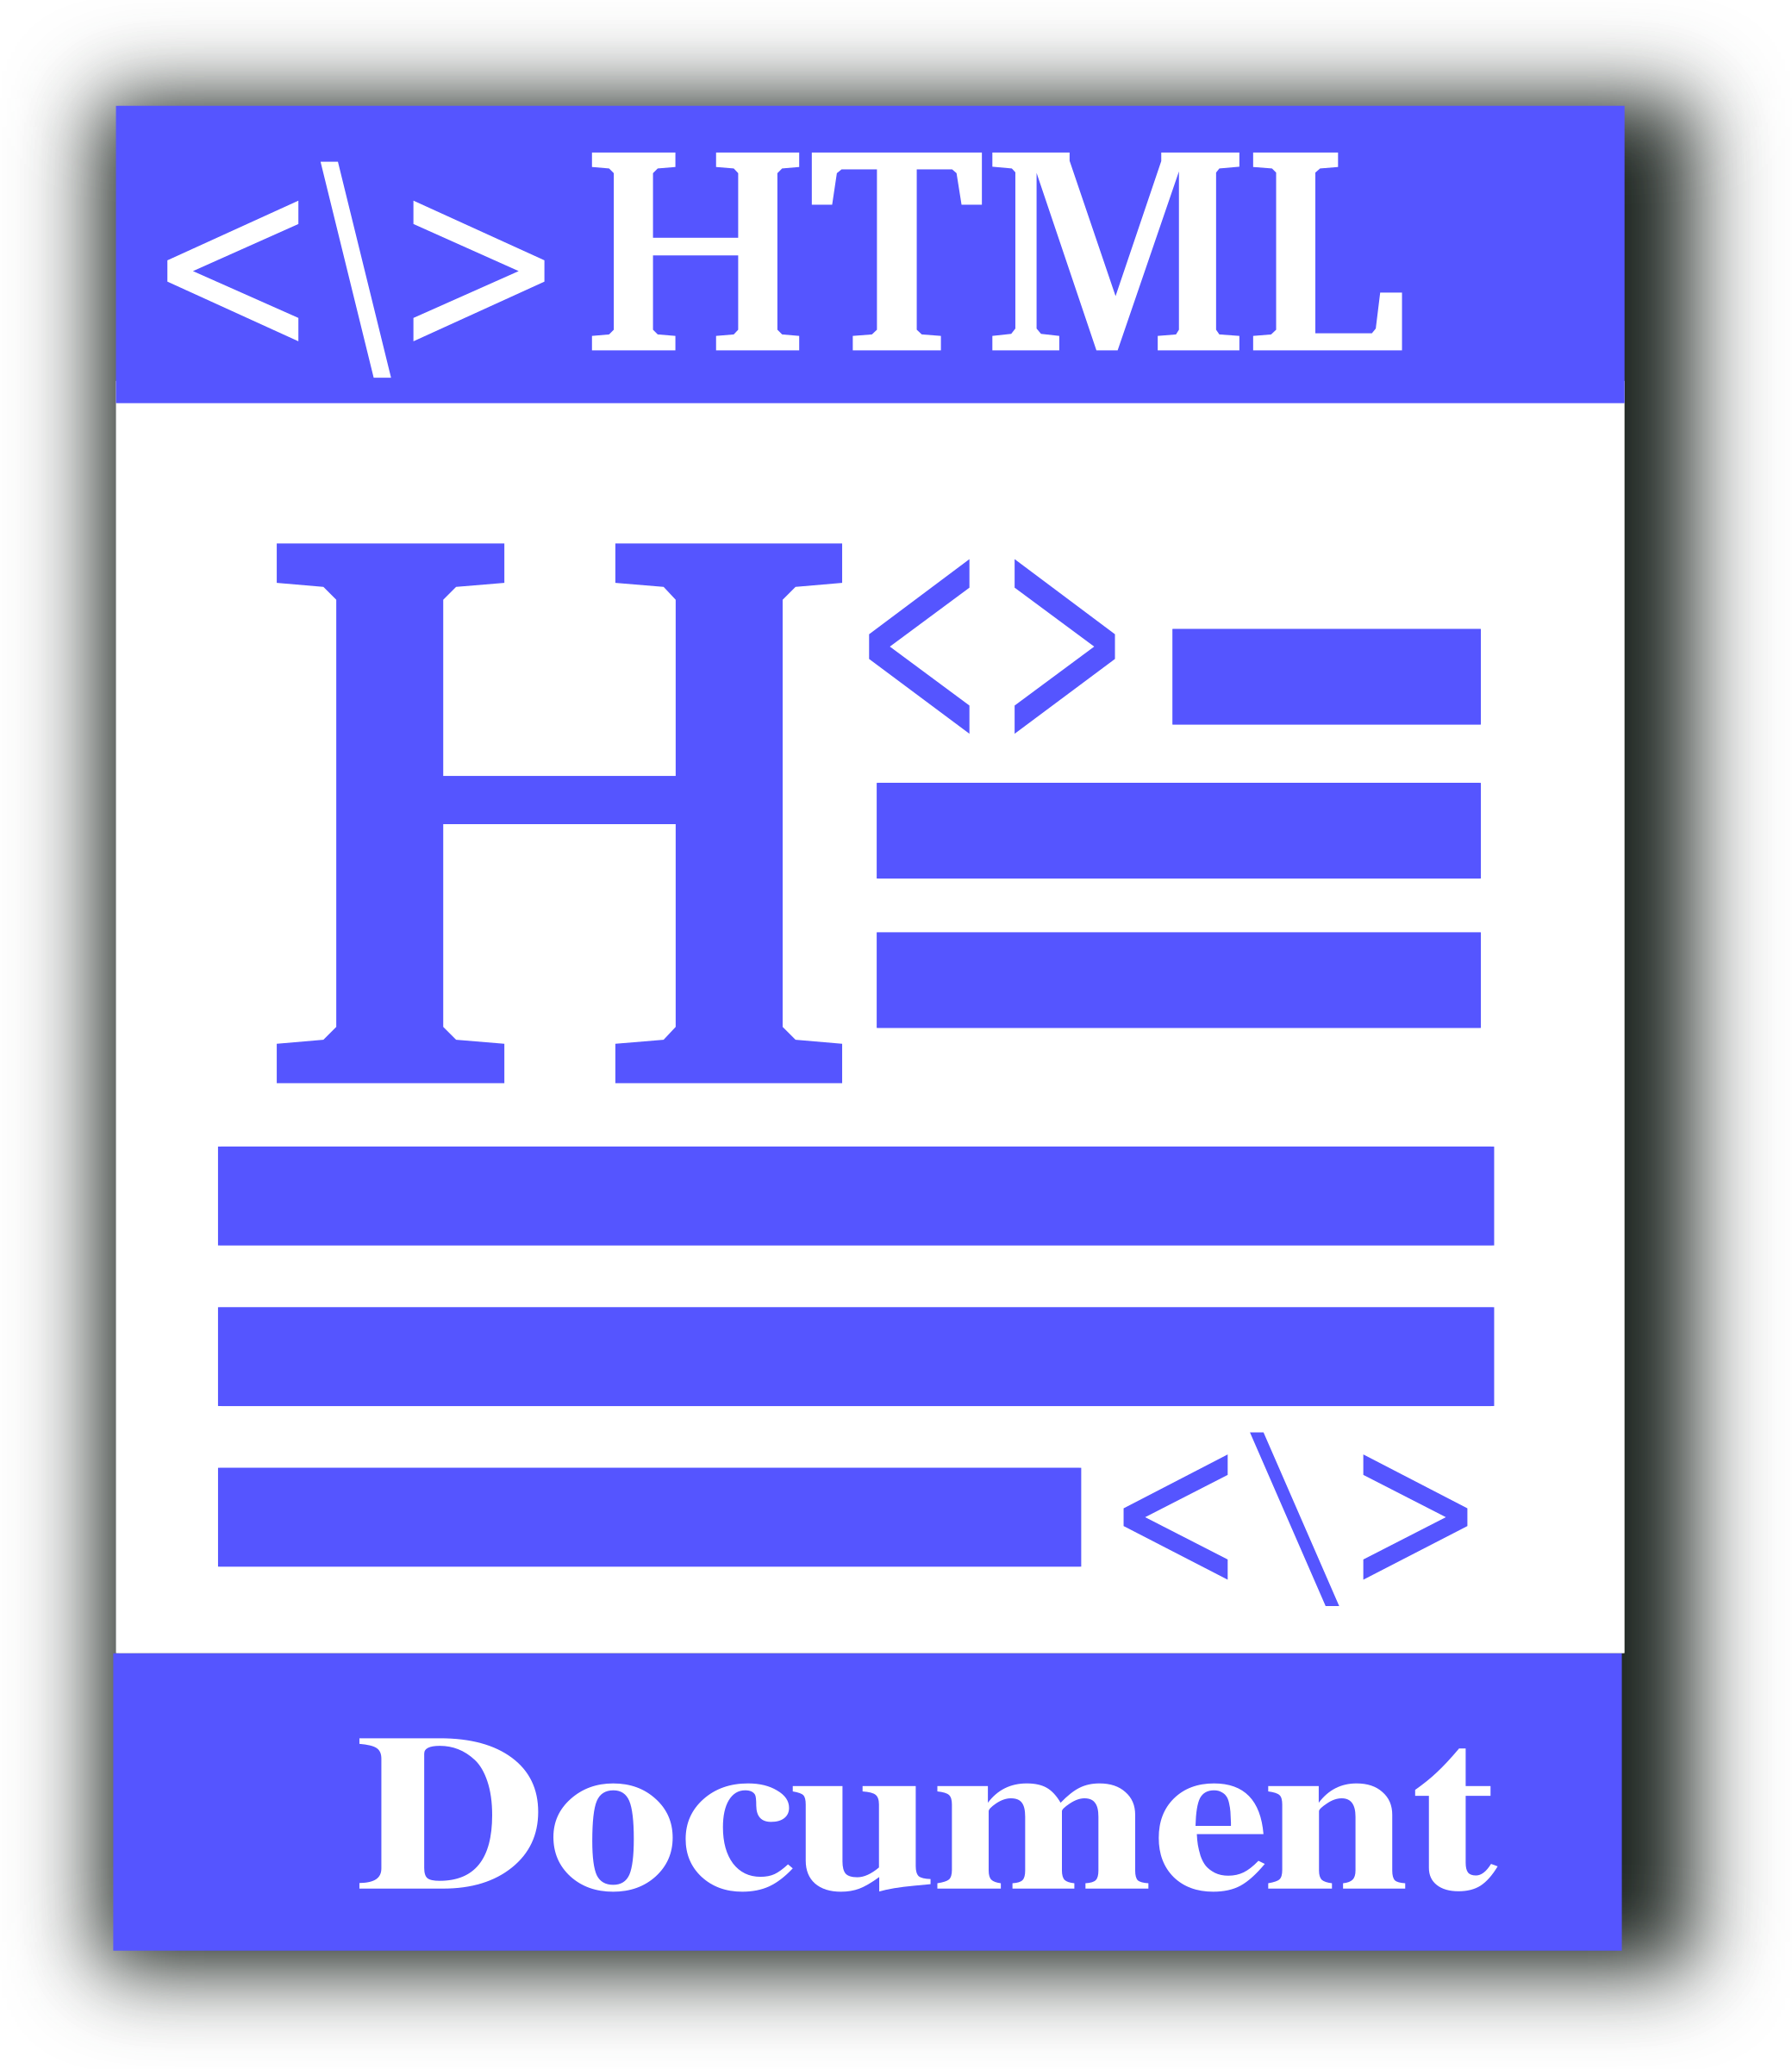 HTML file icon by gsagri04